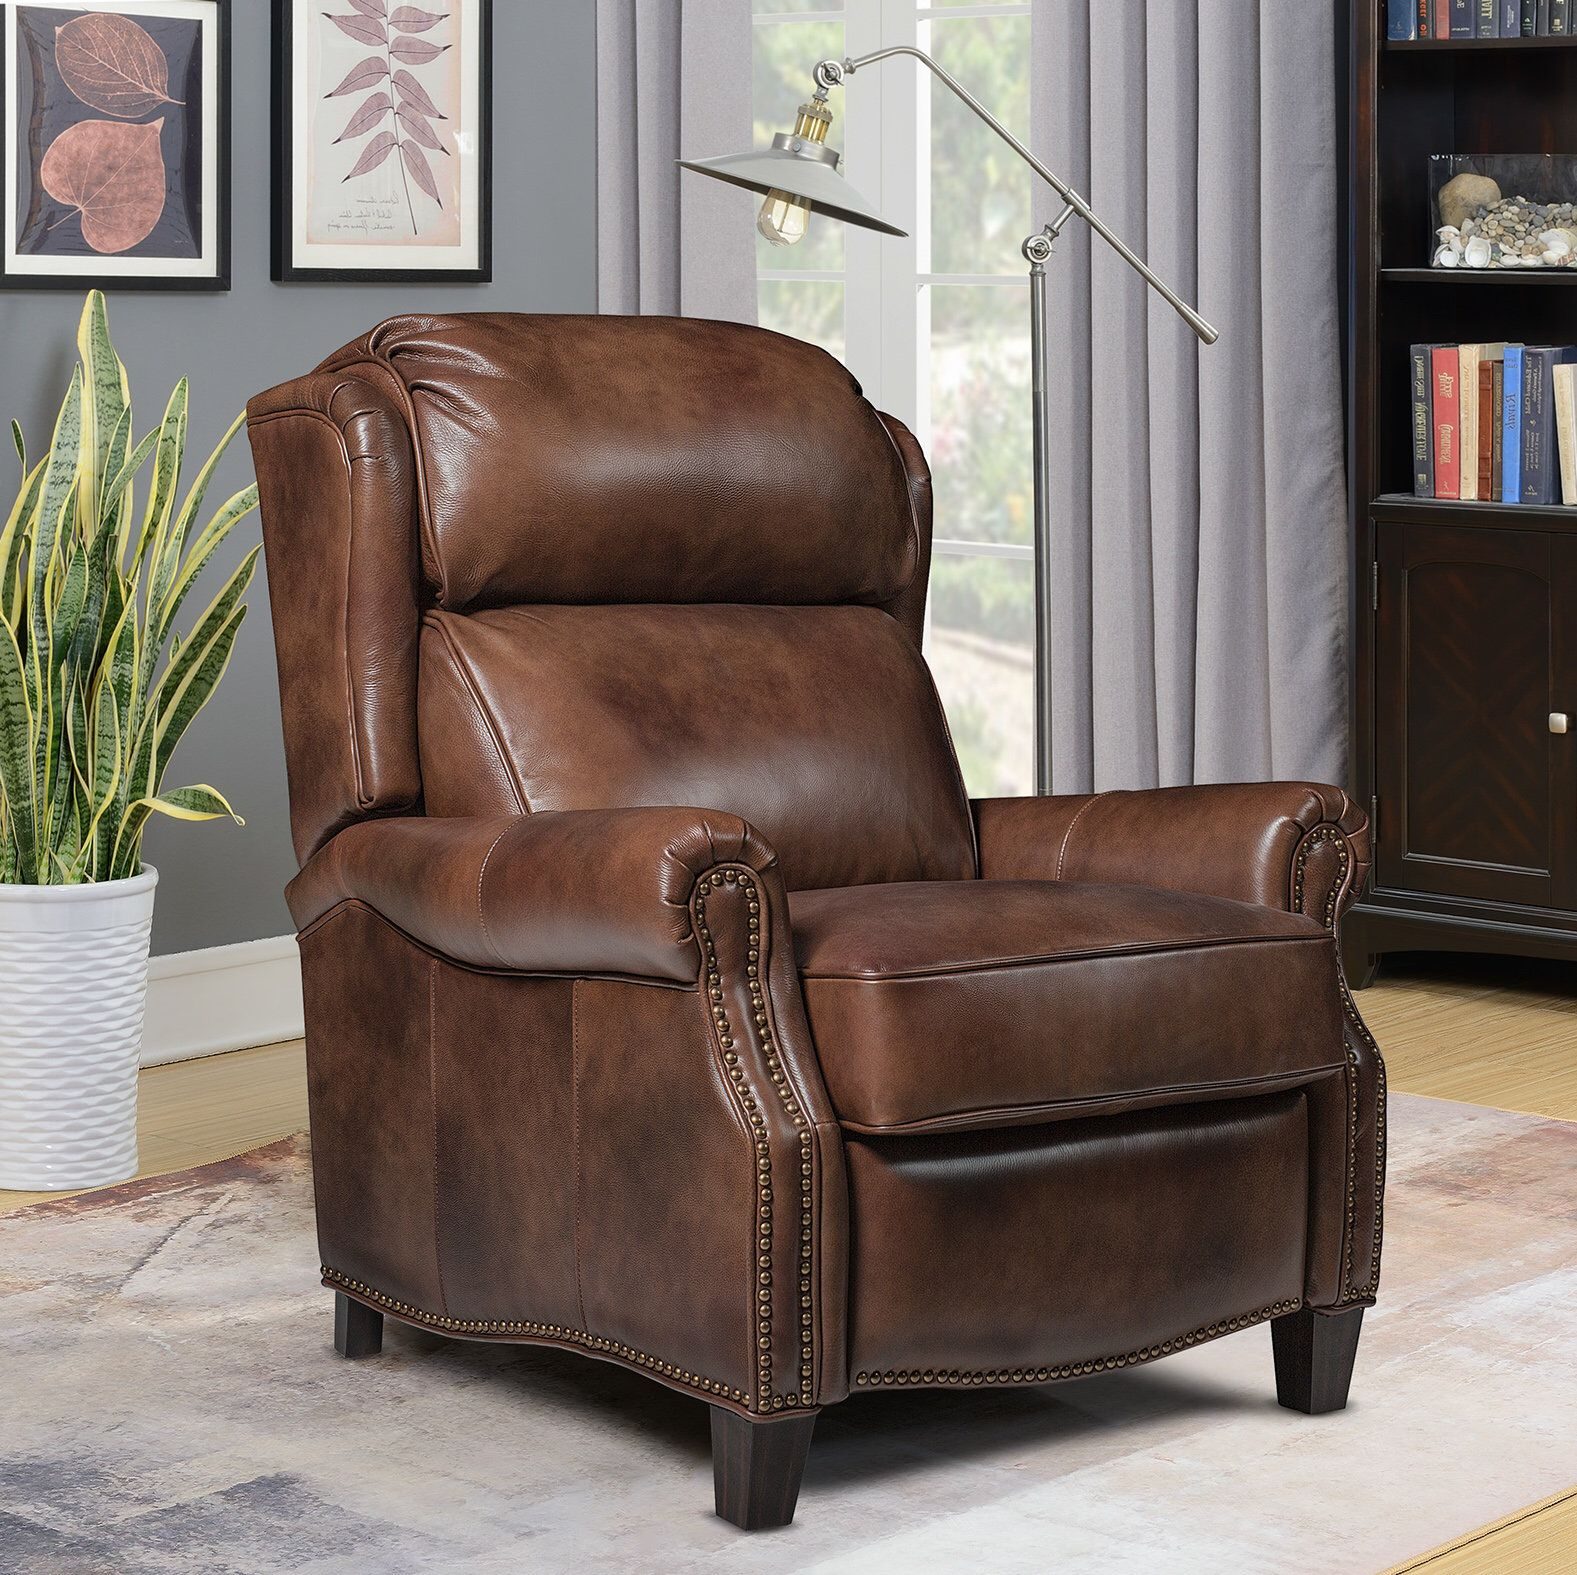 Benelva Leather Manual Recliner Recliner Darby Home Co Home